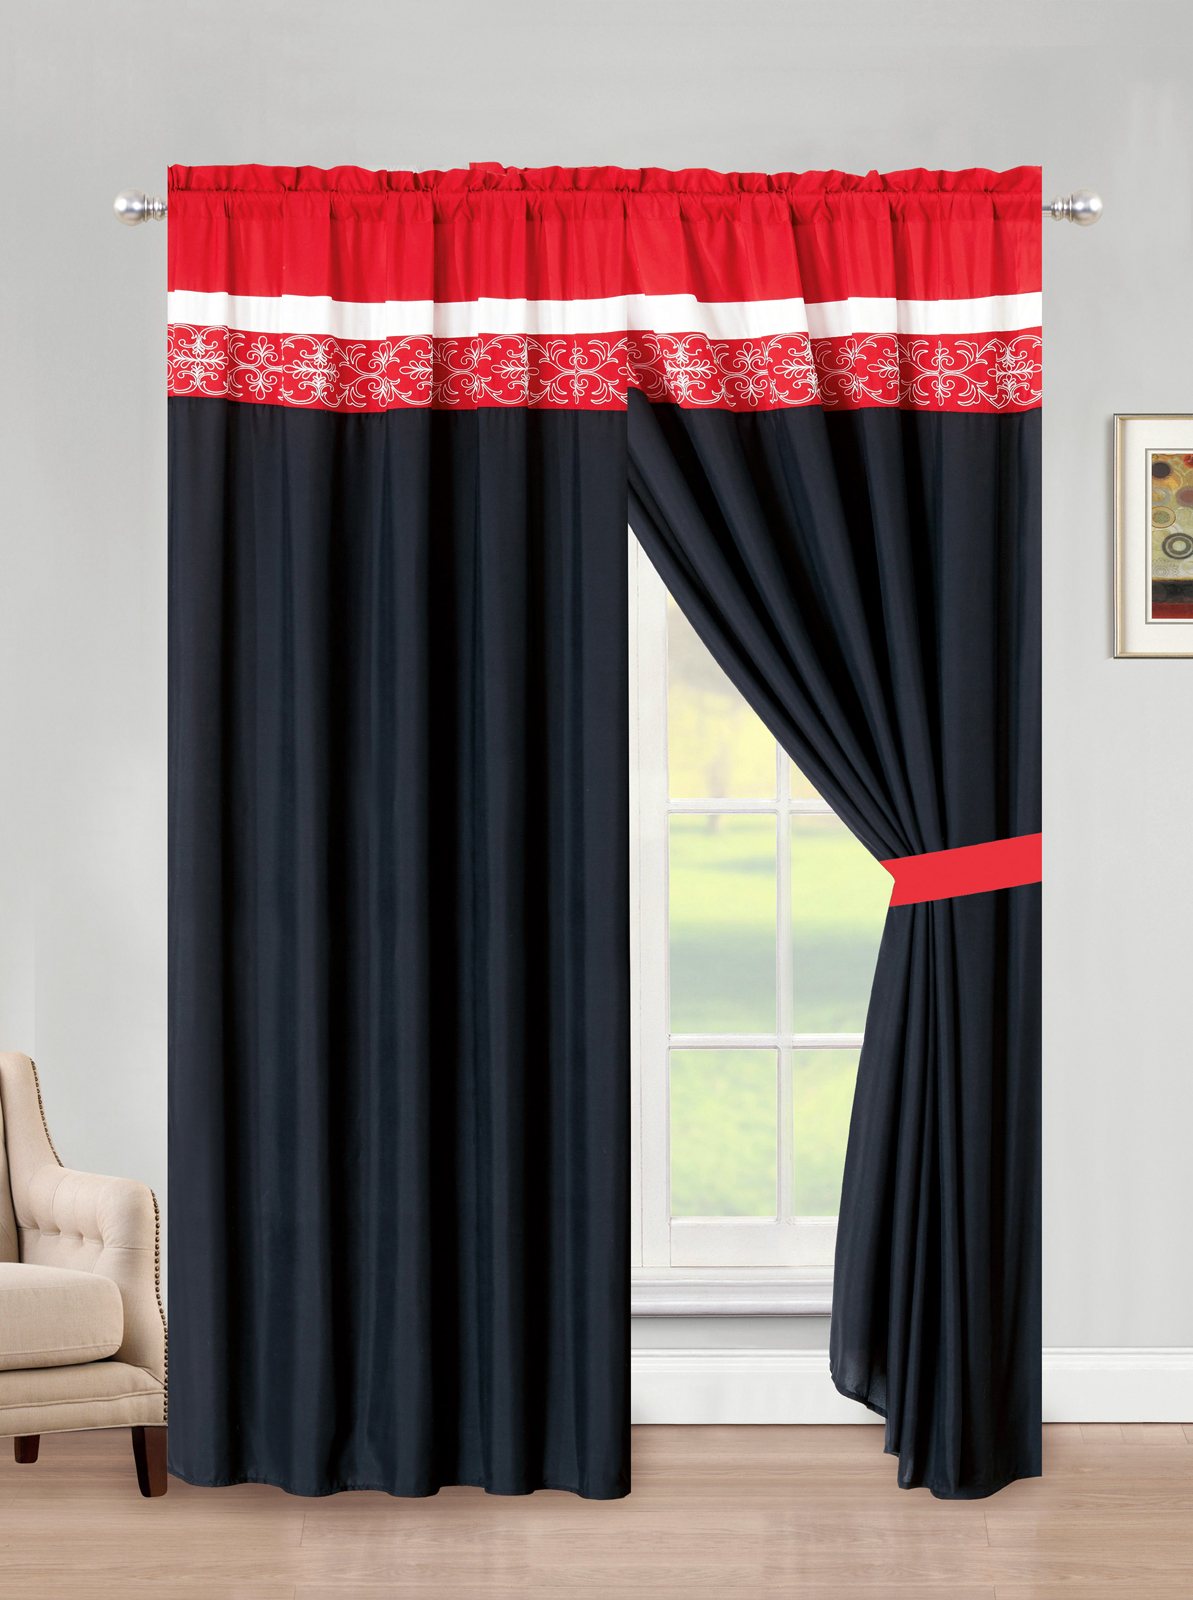 4 Pc Preston Royal Damask Floral Scroll Curtain Set Red Black White Sheer Drape Ebay